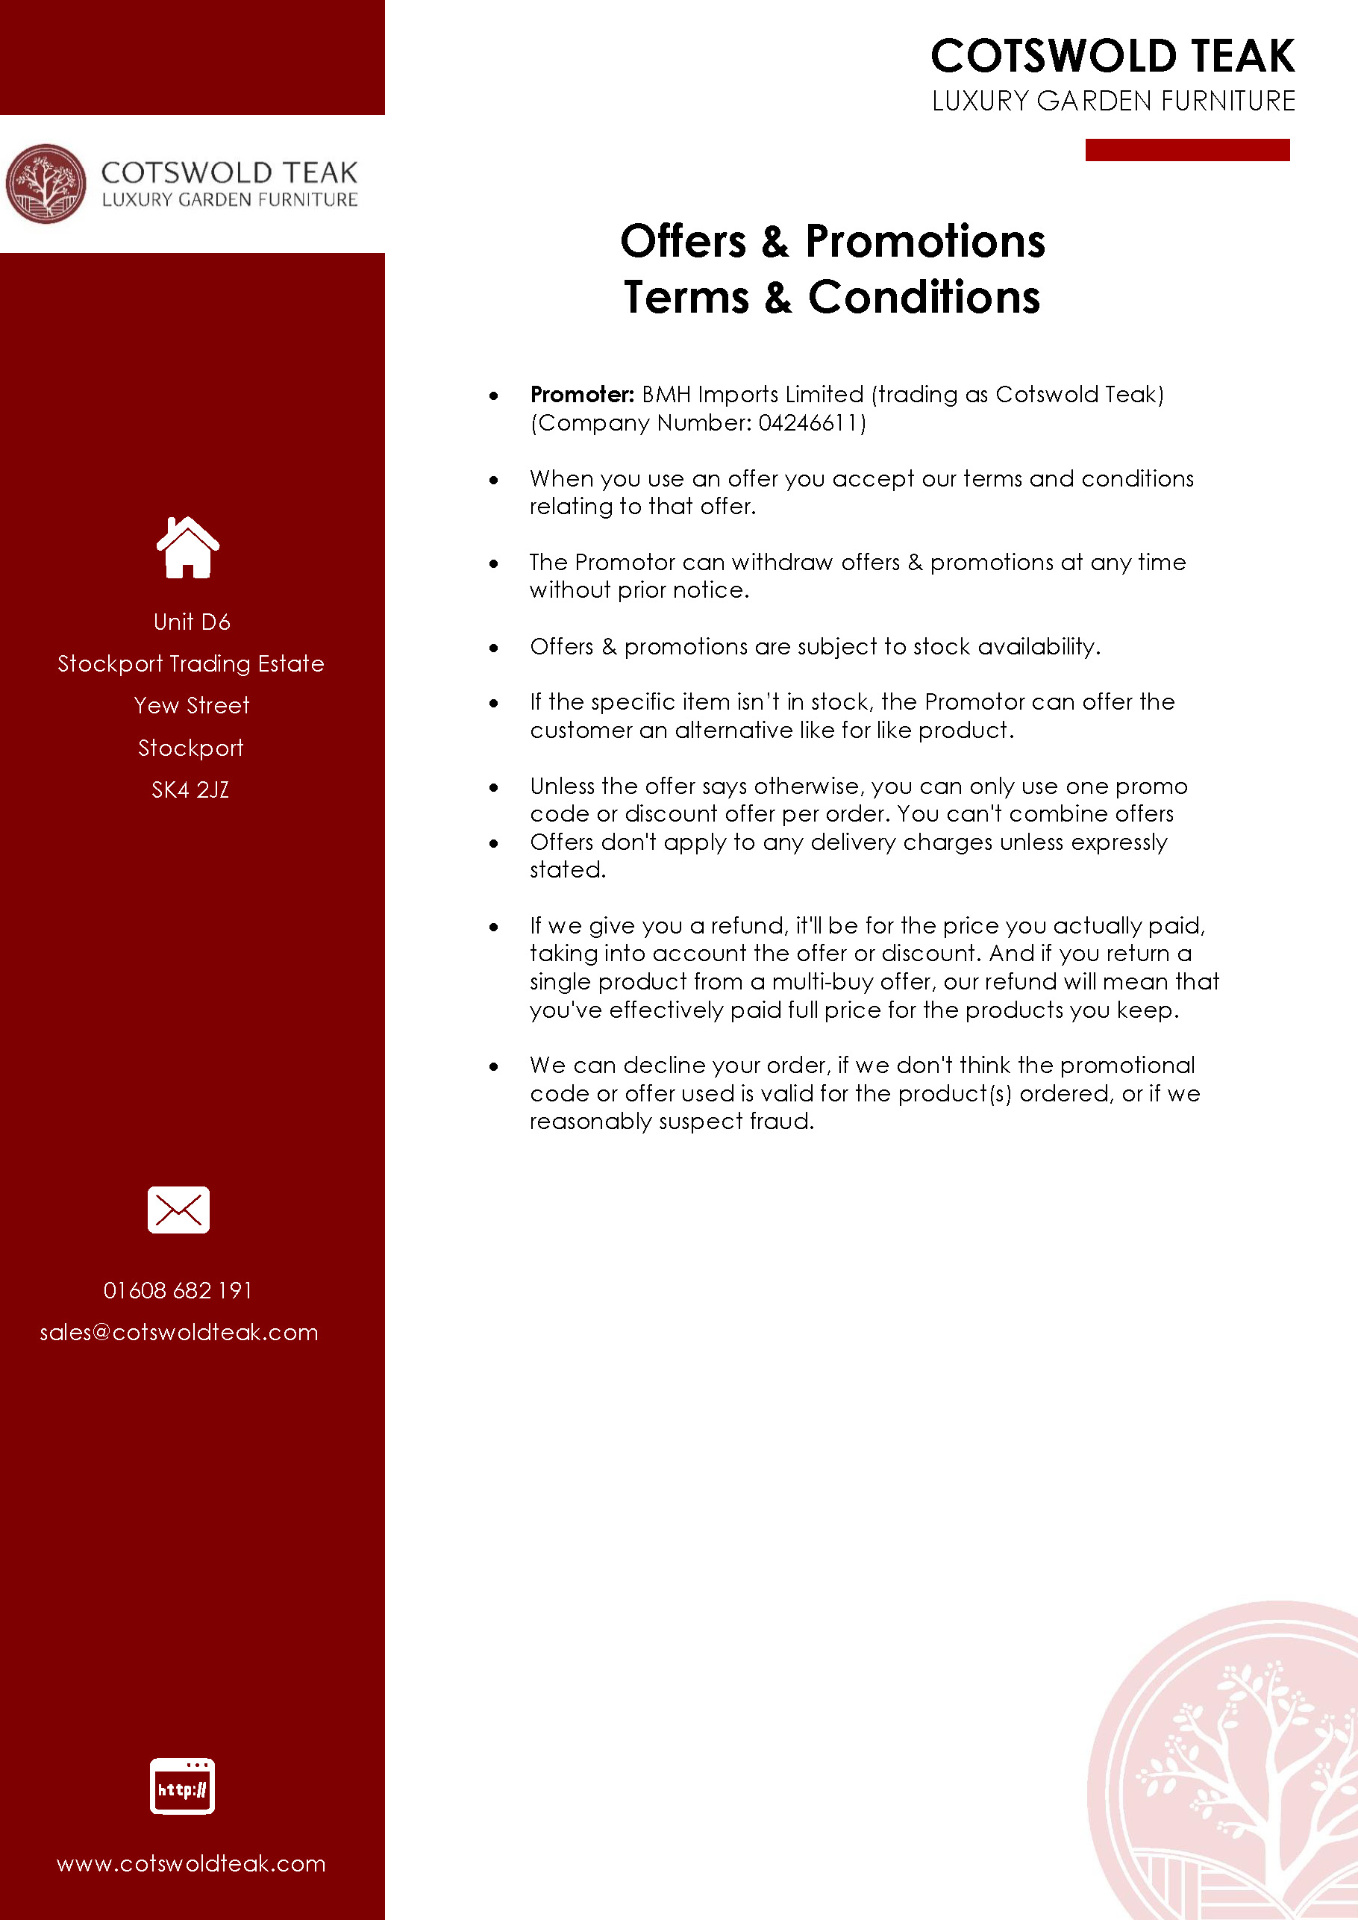 cotswold-ts-cs-offers-promotions.jpg